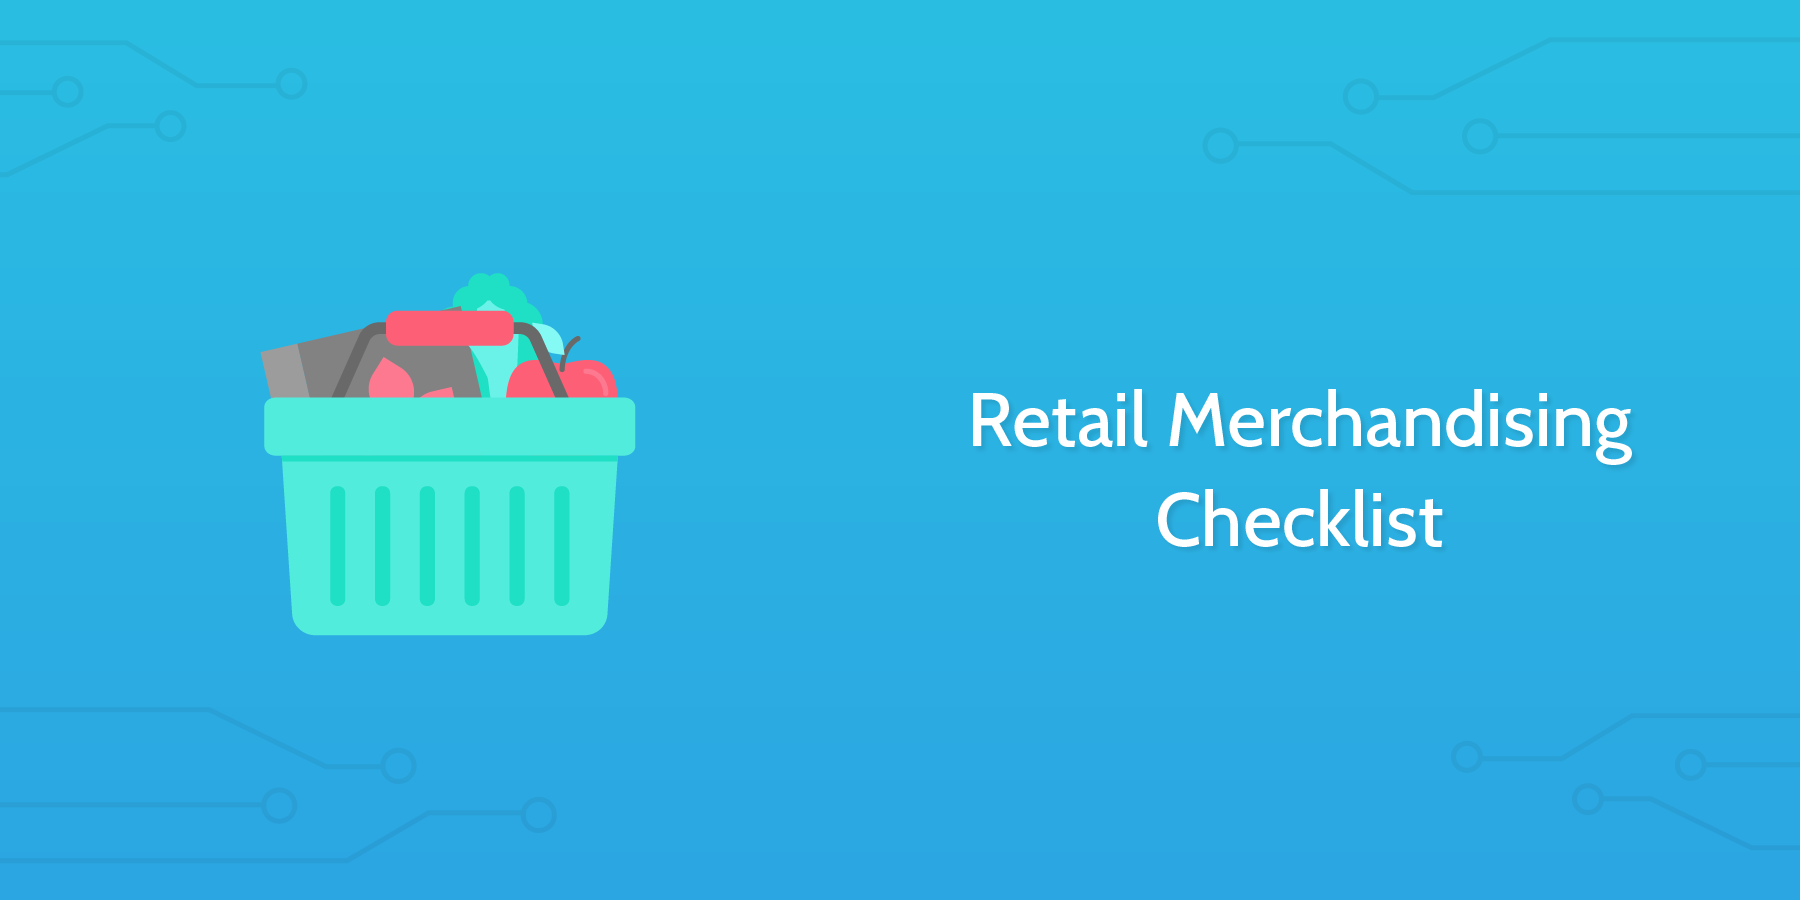 Retail Merchandising Checklist